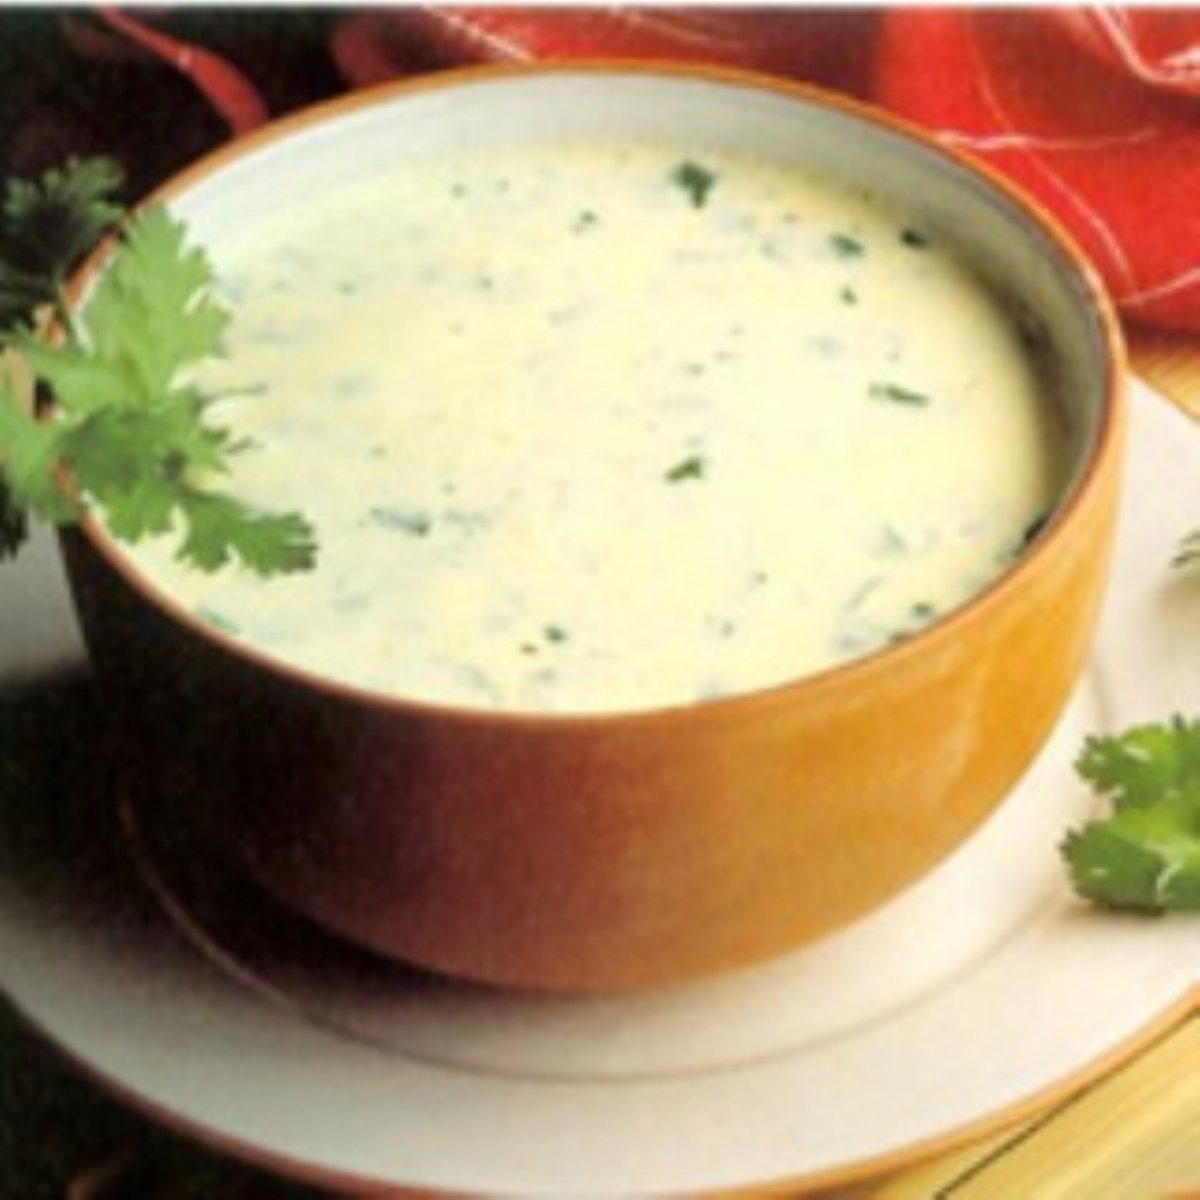 Recipes Course Soups, Stews and Chili Vegetable Chilled Asparagus Soup